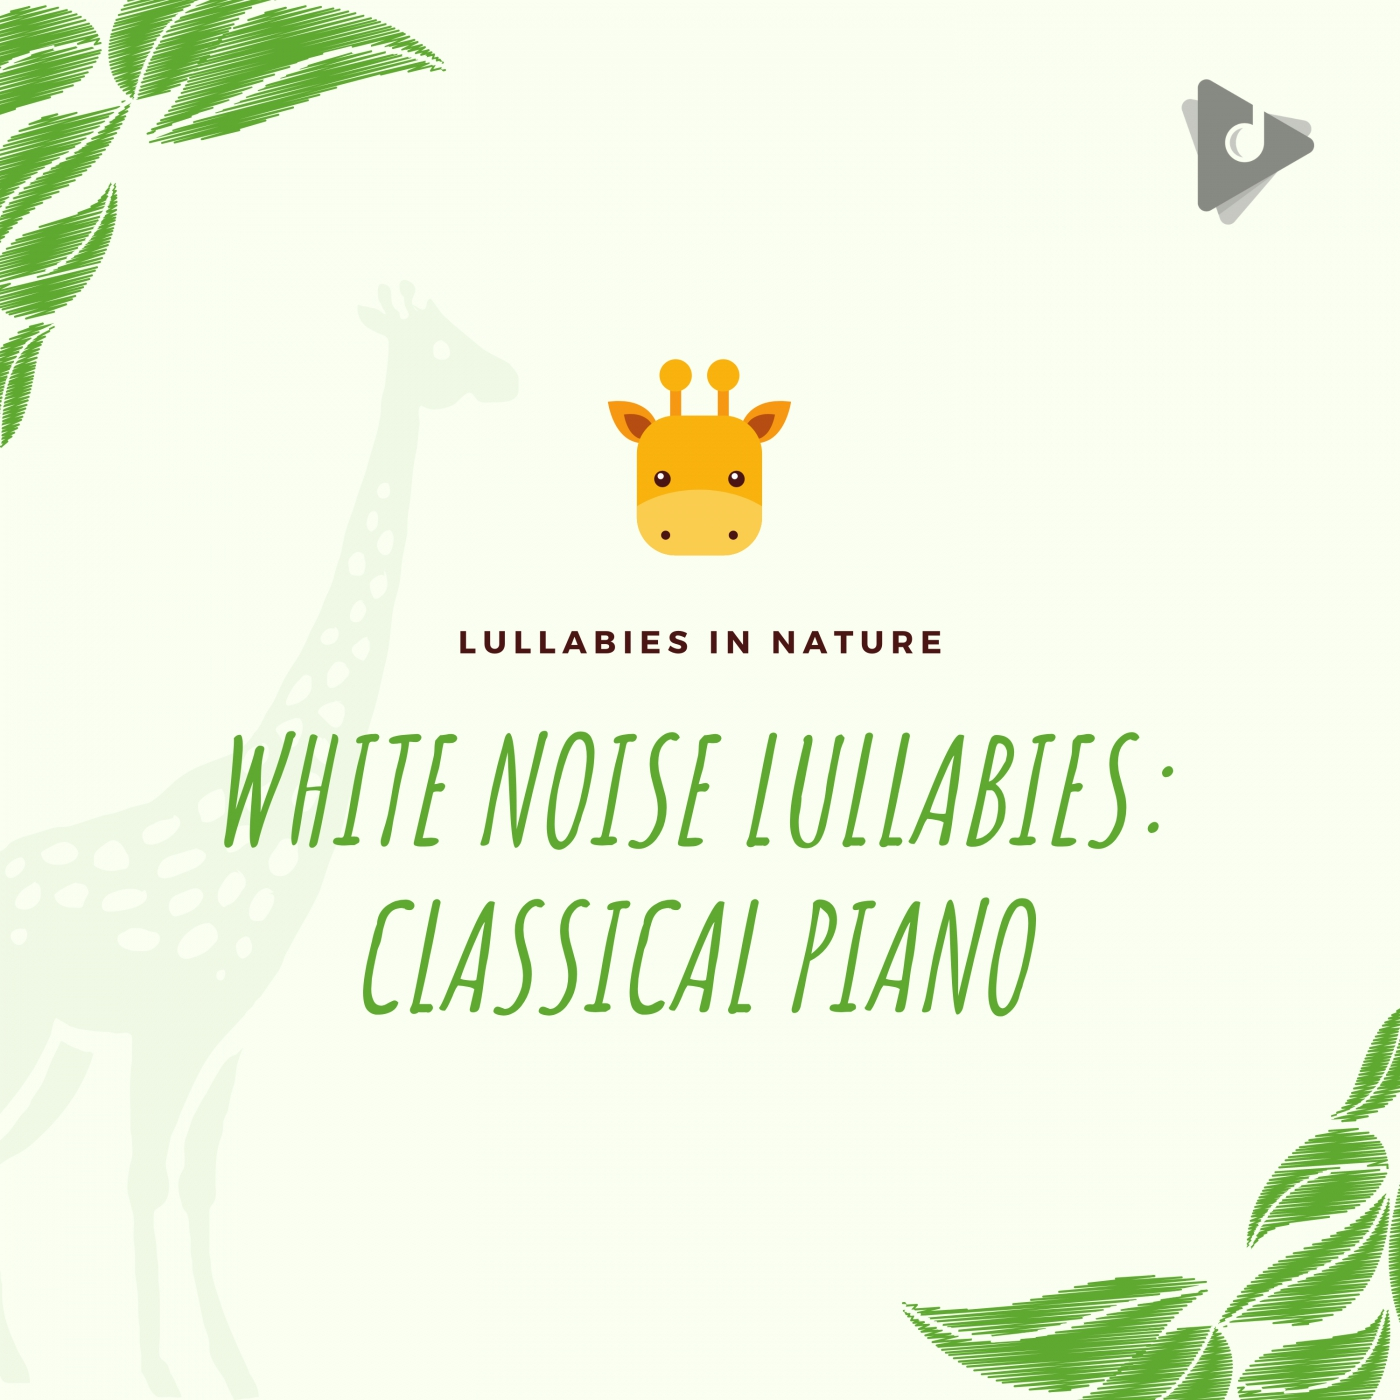 White Noise Lullabies: Classical Piano